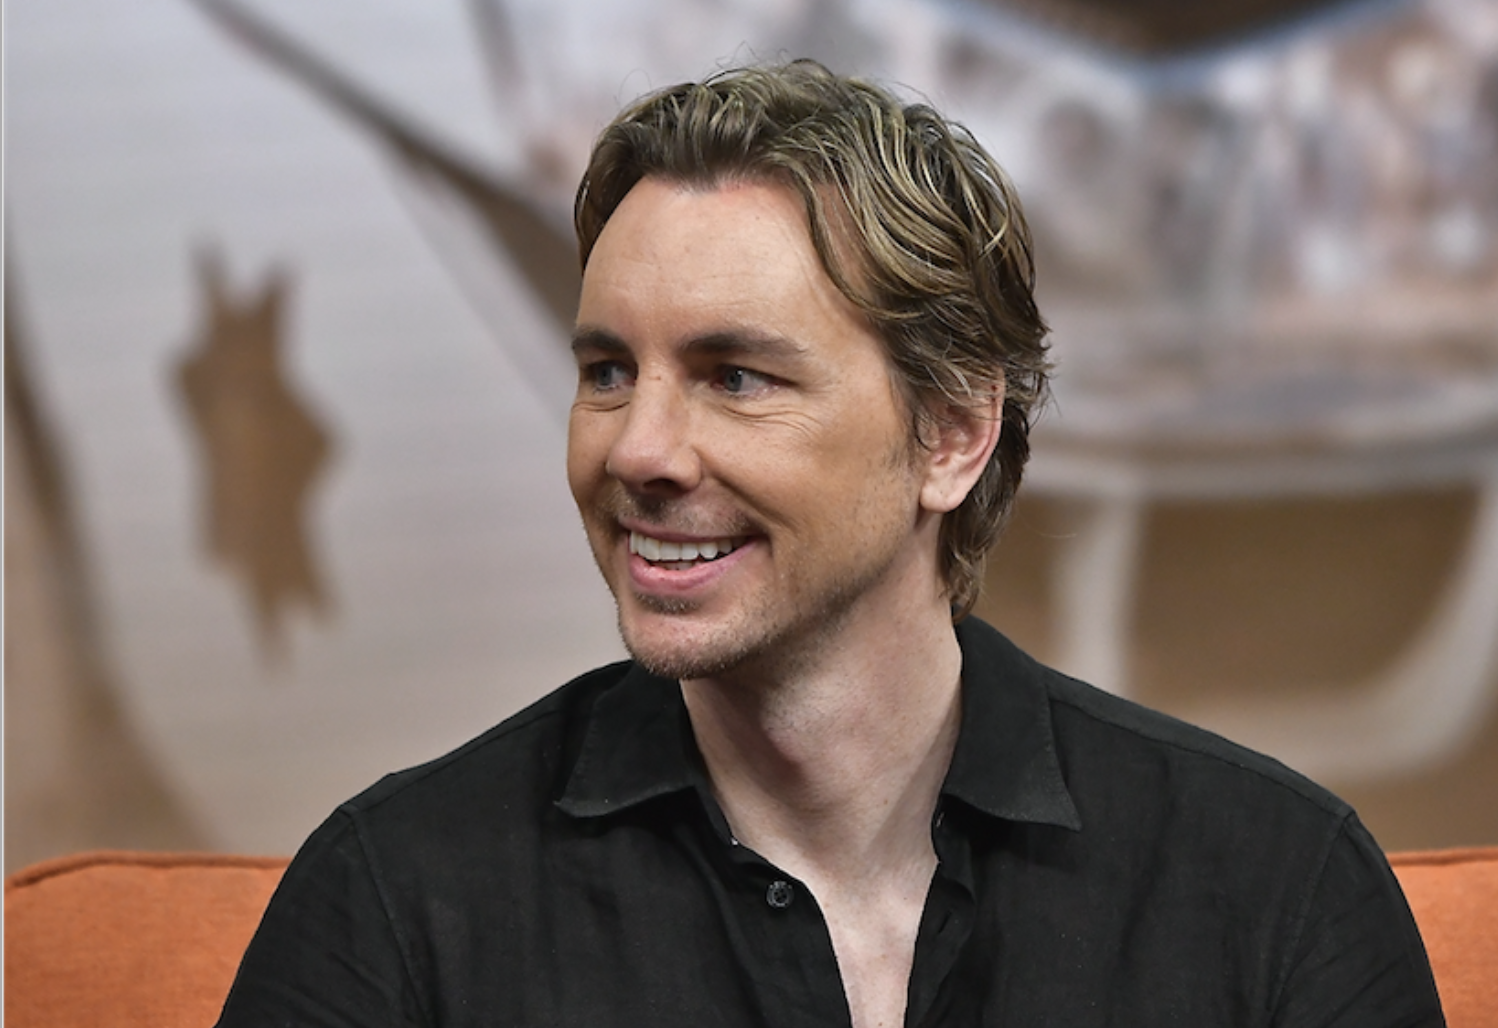 Dax Shepard Possible Sex Addiction Issue